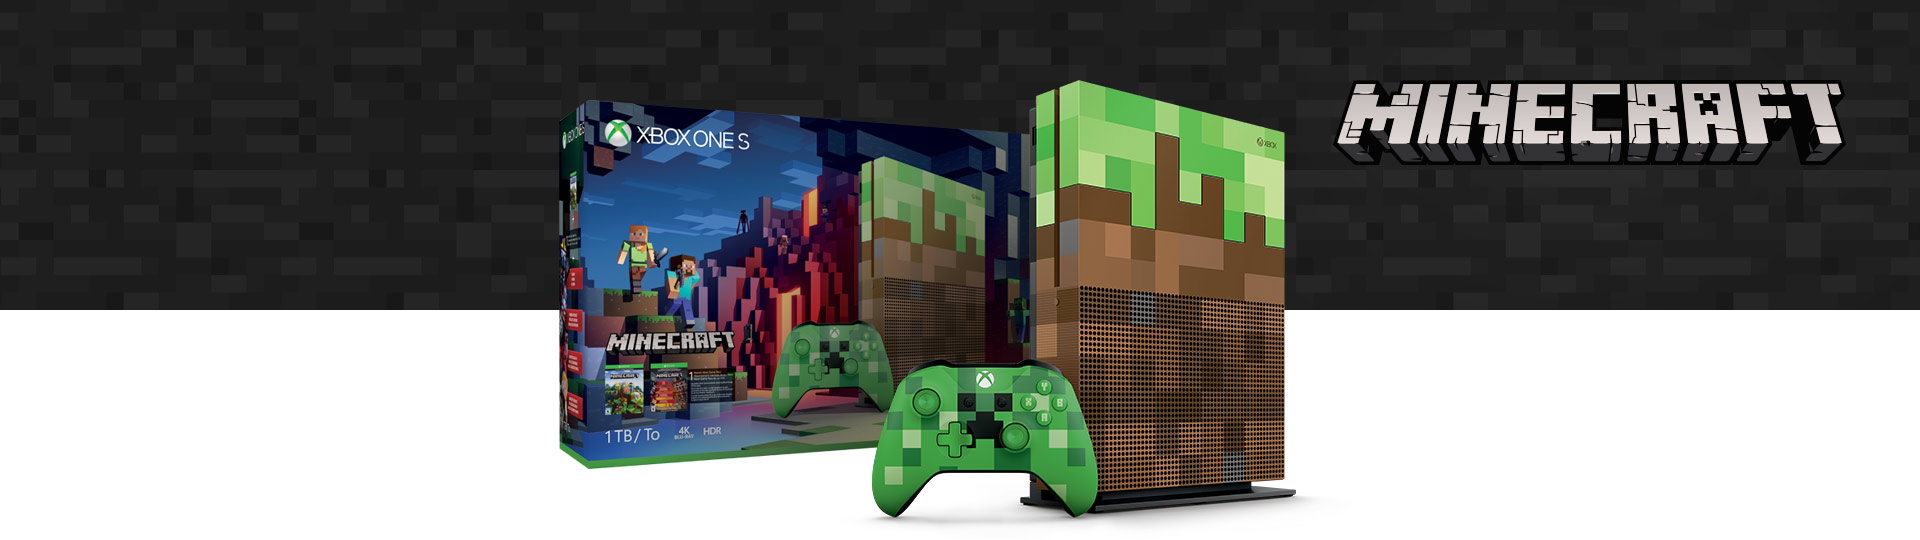 | Source: Microsoft | The new Limited Edition Xbox One S 1TB console and Minecraft Creeper controller bundle available October 3, 2017 for $399. |